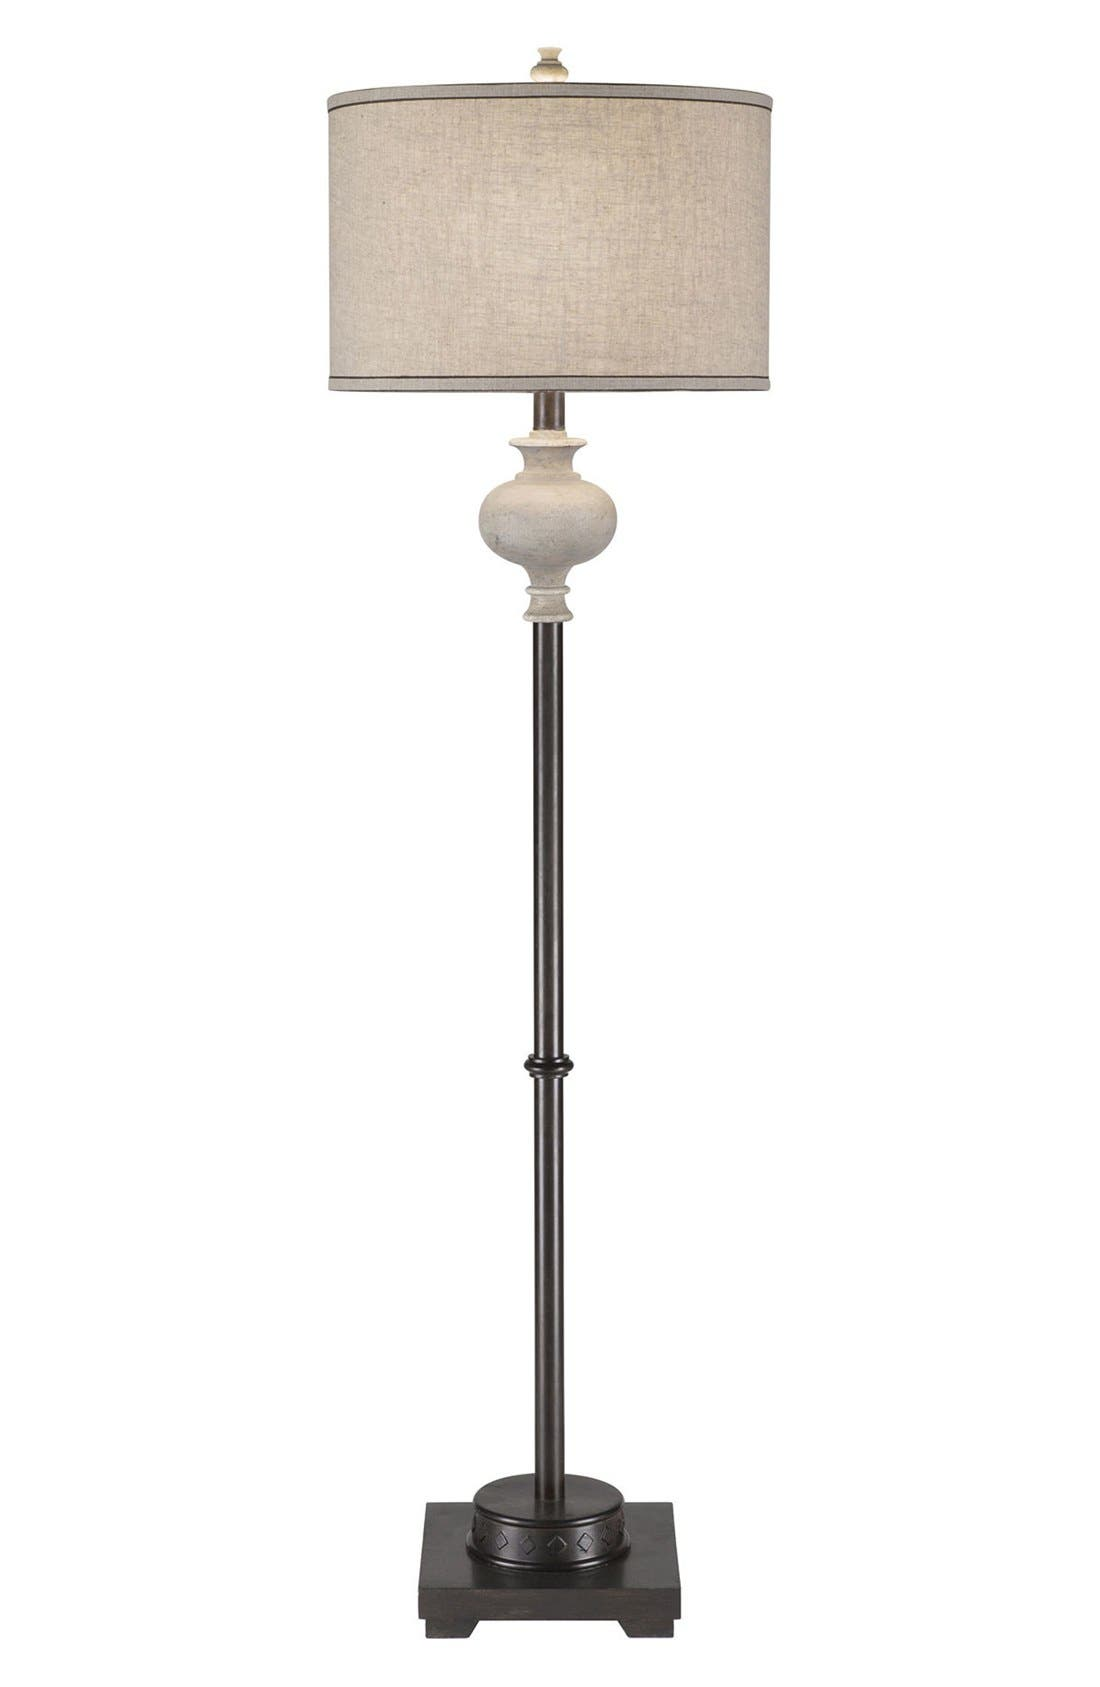 Alternate Image 1 Selected - JAlexander Whitewash & Bronze Floor Lamp